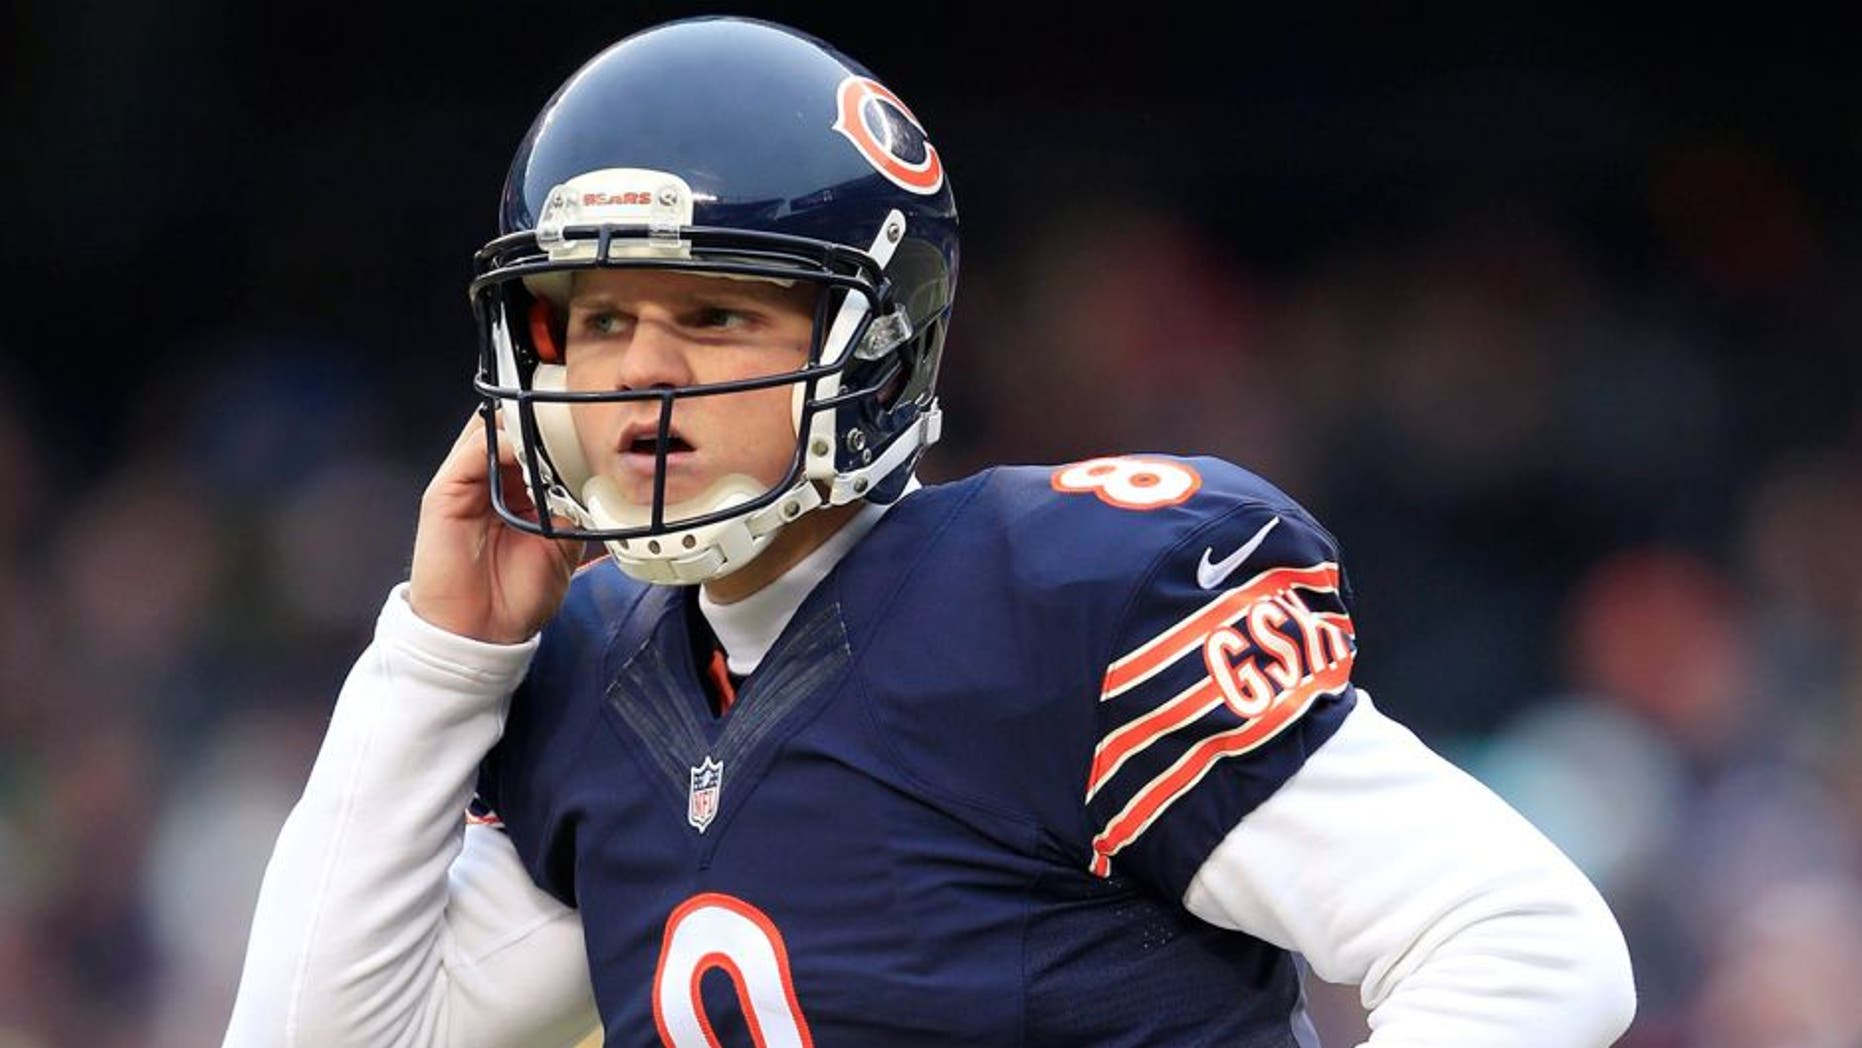 CHICAGO, IL - DECEMBER 21: Jimmy Clausen #8 of the Chicago Bears heads off the field after failing to convert on a third down during the first quarter of their game against the against the Detroit Lions at Soldier Field on December 21, 2014 in Chicago, Illinois. (Photo by Jamie Squire/Getty Images)